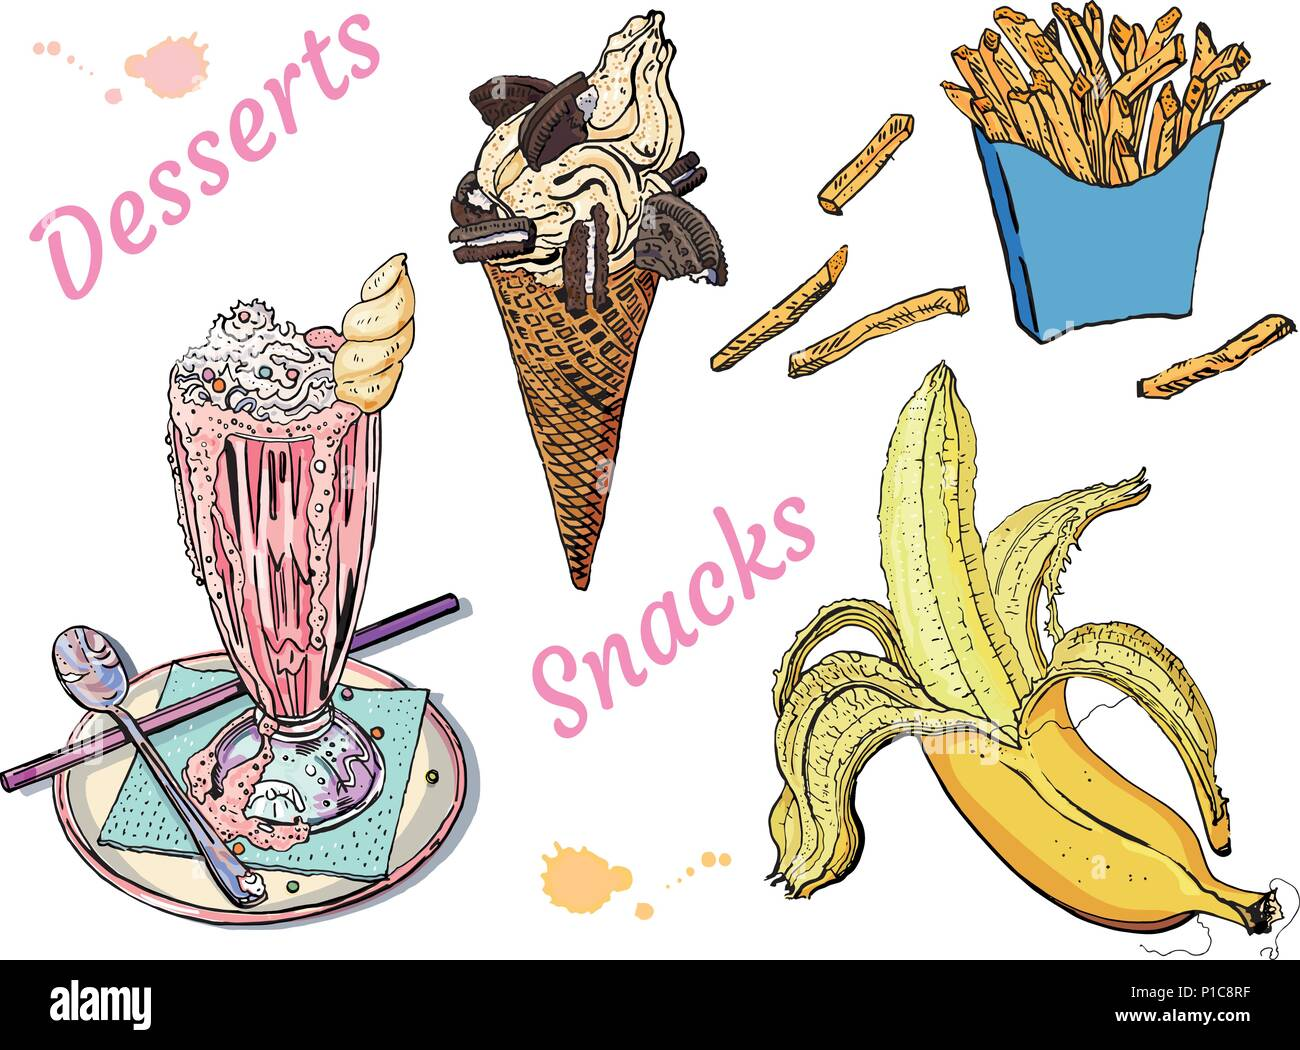 Snacks and desserts: milk shake, ice cream, banana, french fries. Isolated on white background. Hand drawn vintage sketchy style vector illustration. Food, cafe menu, delicious, sweet summer. Stock Vector